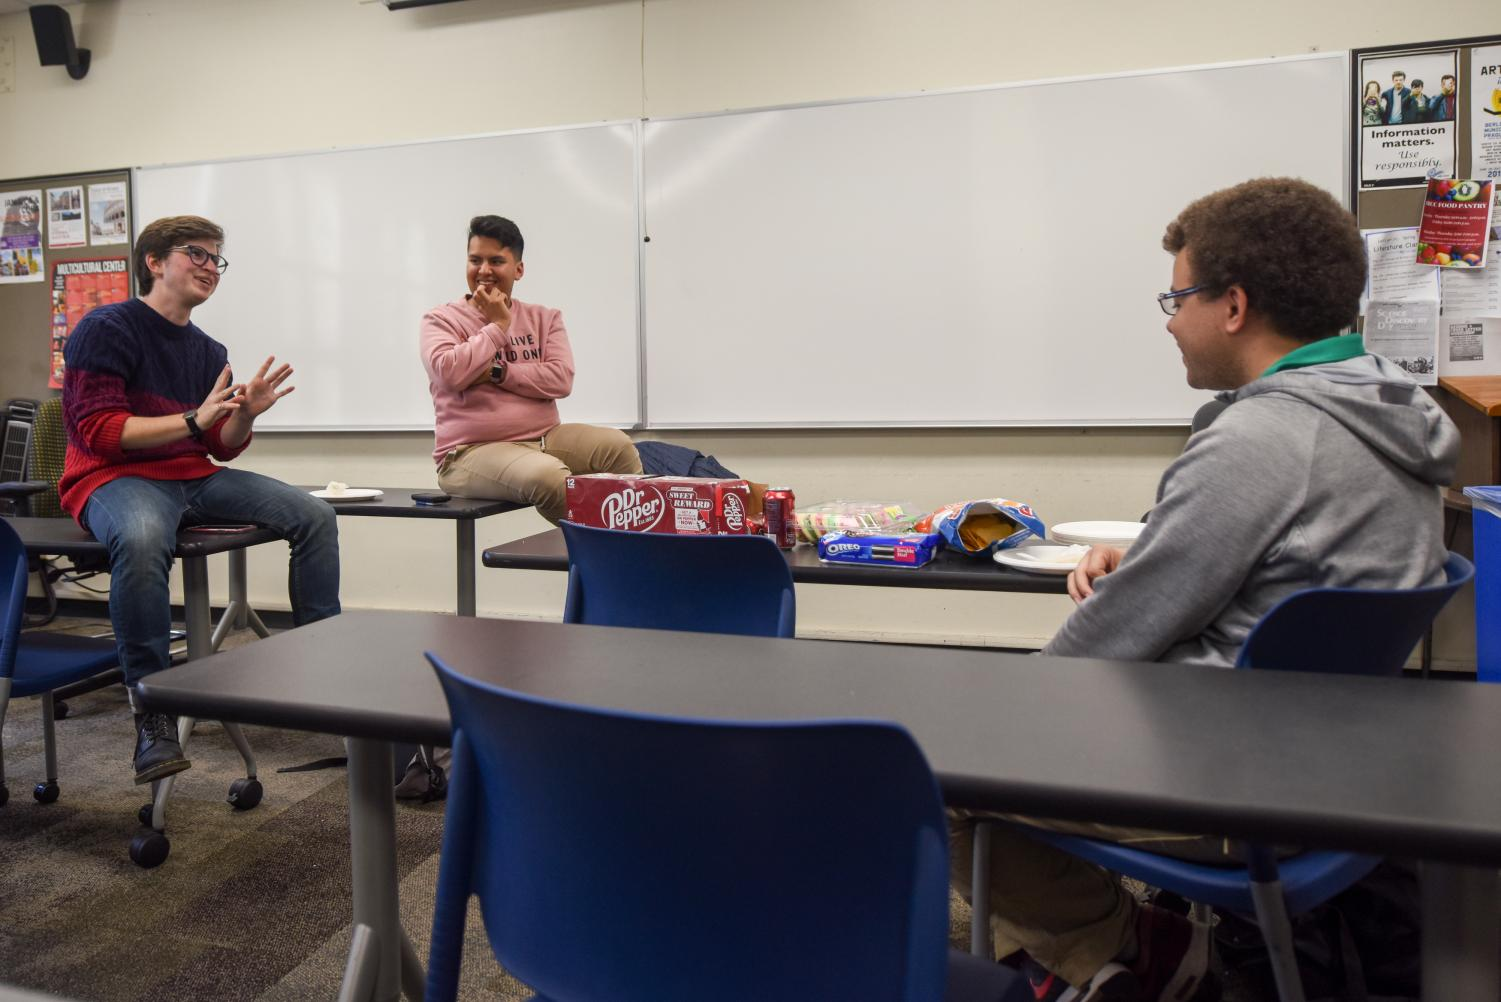 Members of the Campus Democrats Club from left, club president Percy Langston, club vice president Alan Morales, and Damian Clogher, hold their first meeting on Thursday, March 21, 2019, in the Interdisciplinary Center Room 222 at City College in Santa Barbara, Calif.